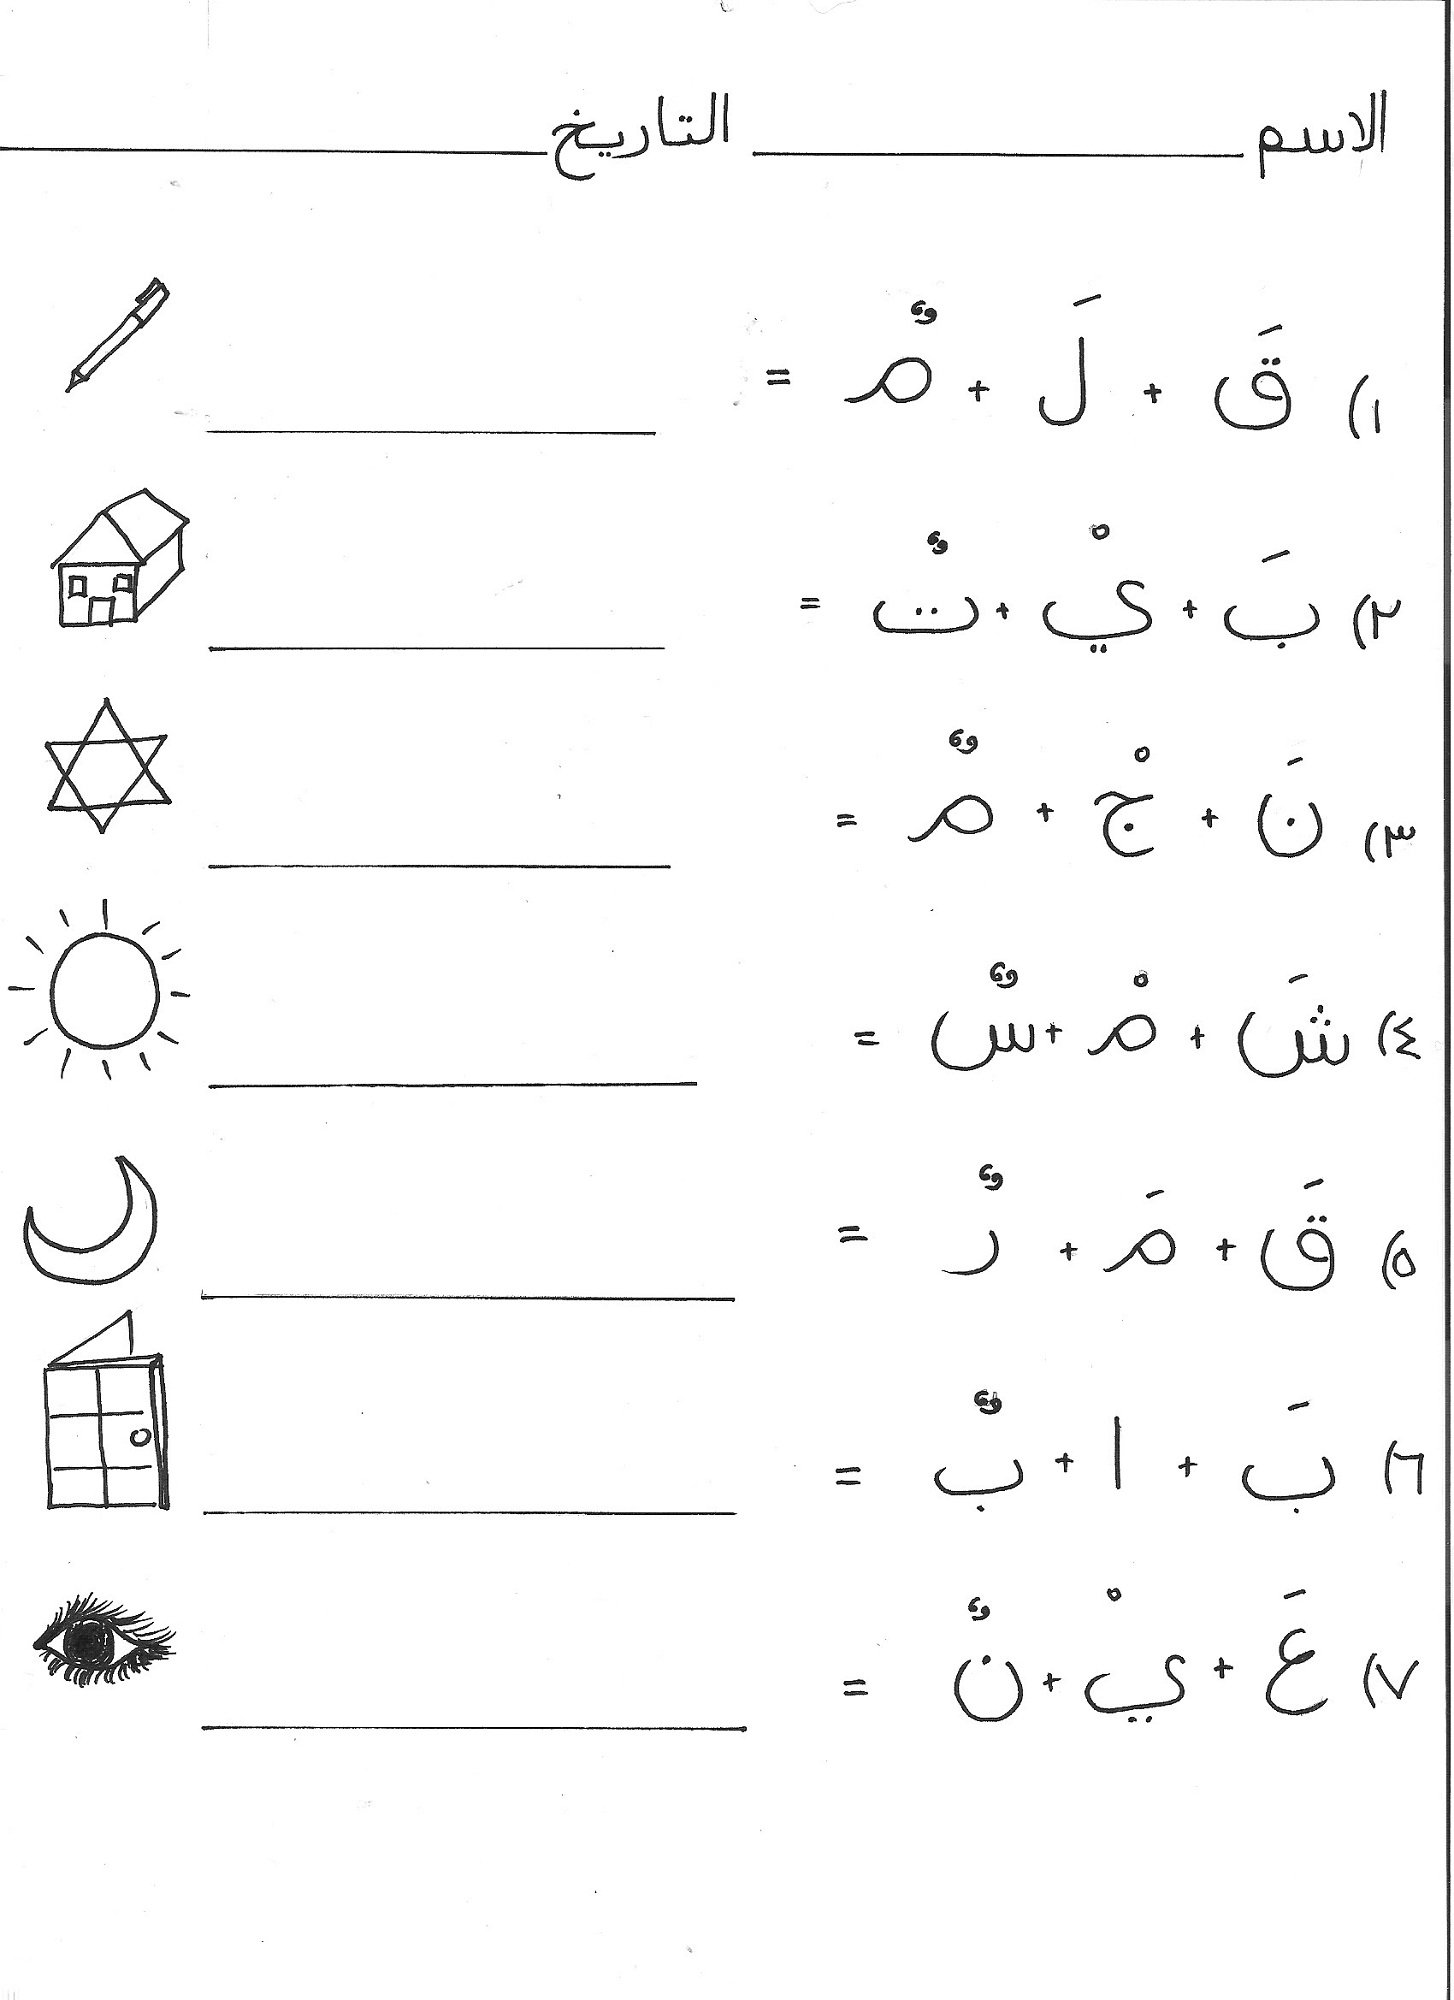 Arabic Letter Writing Format Image Collections